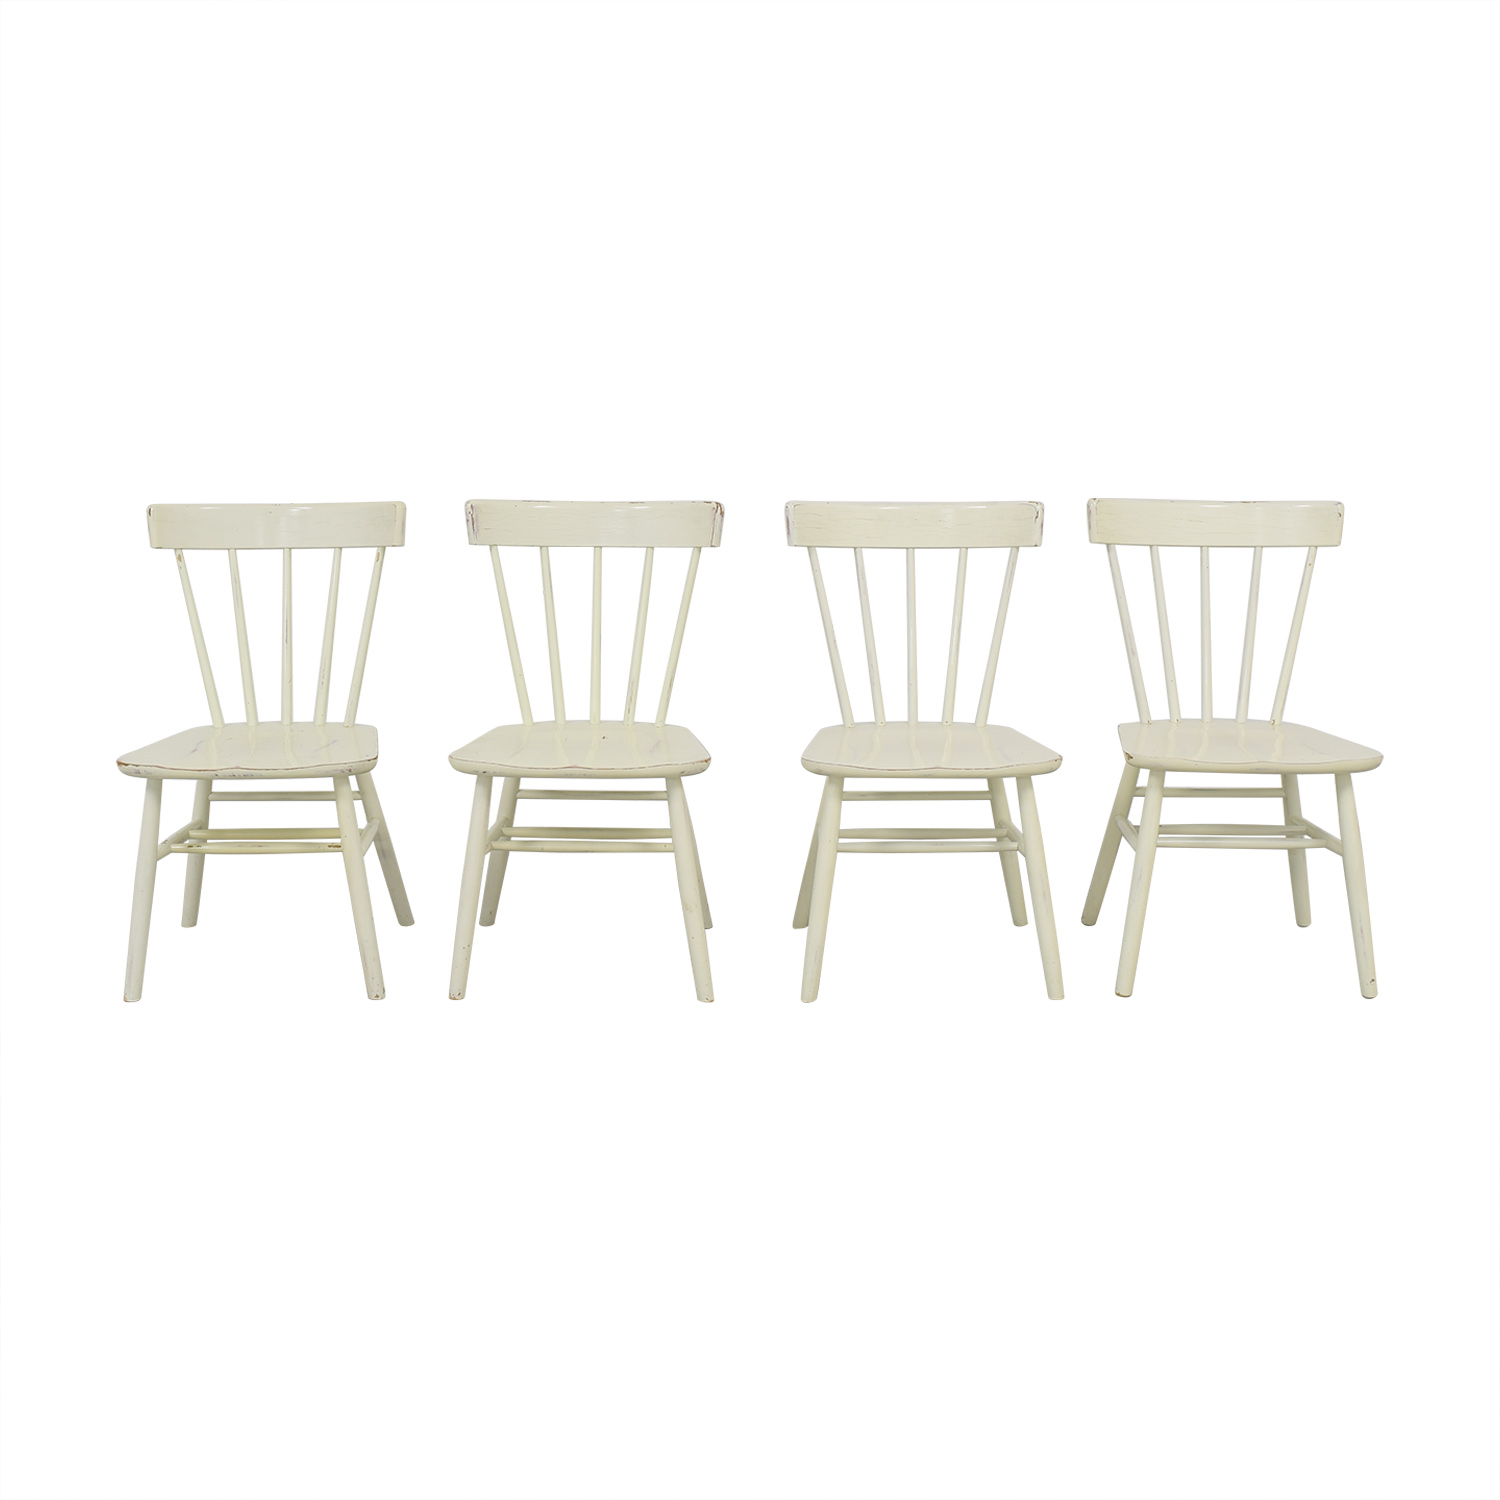 Pottery Barn Pottery Barn Rustic Dining Chairs second hand